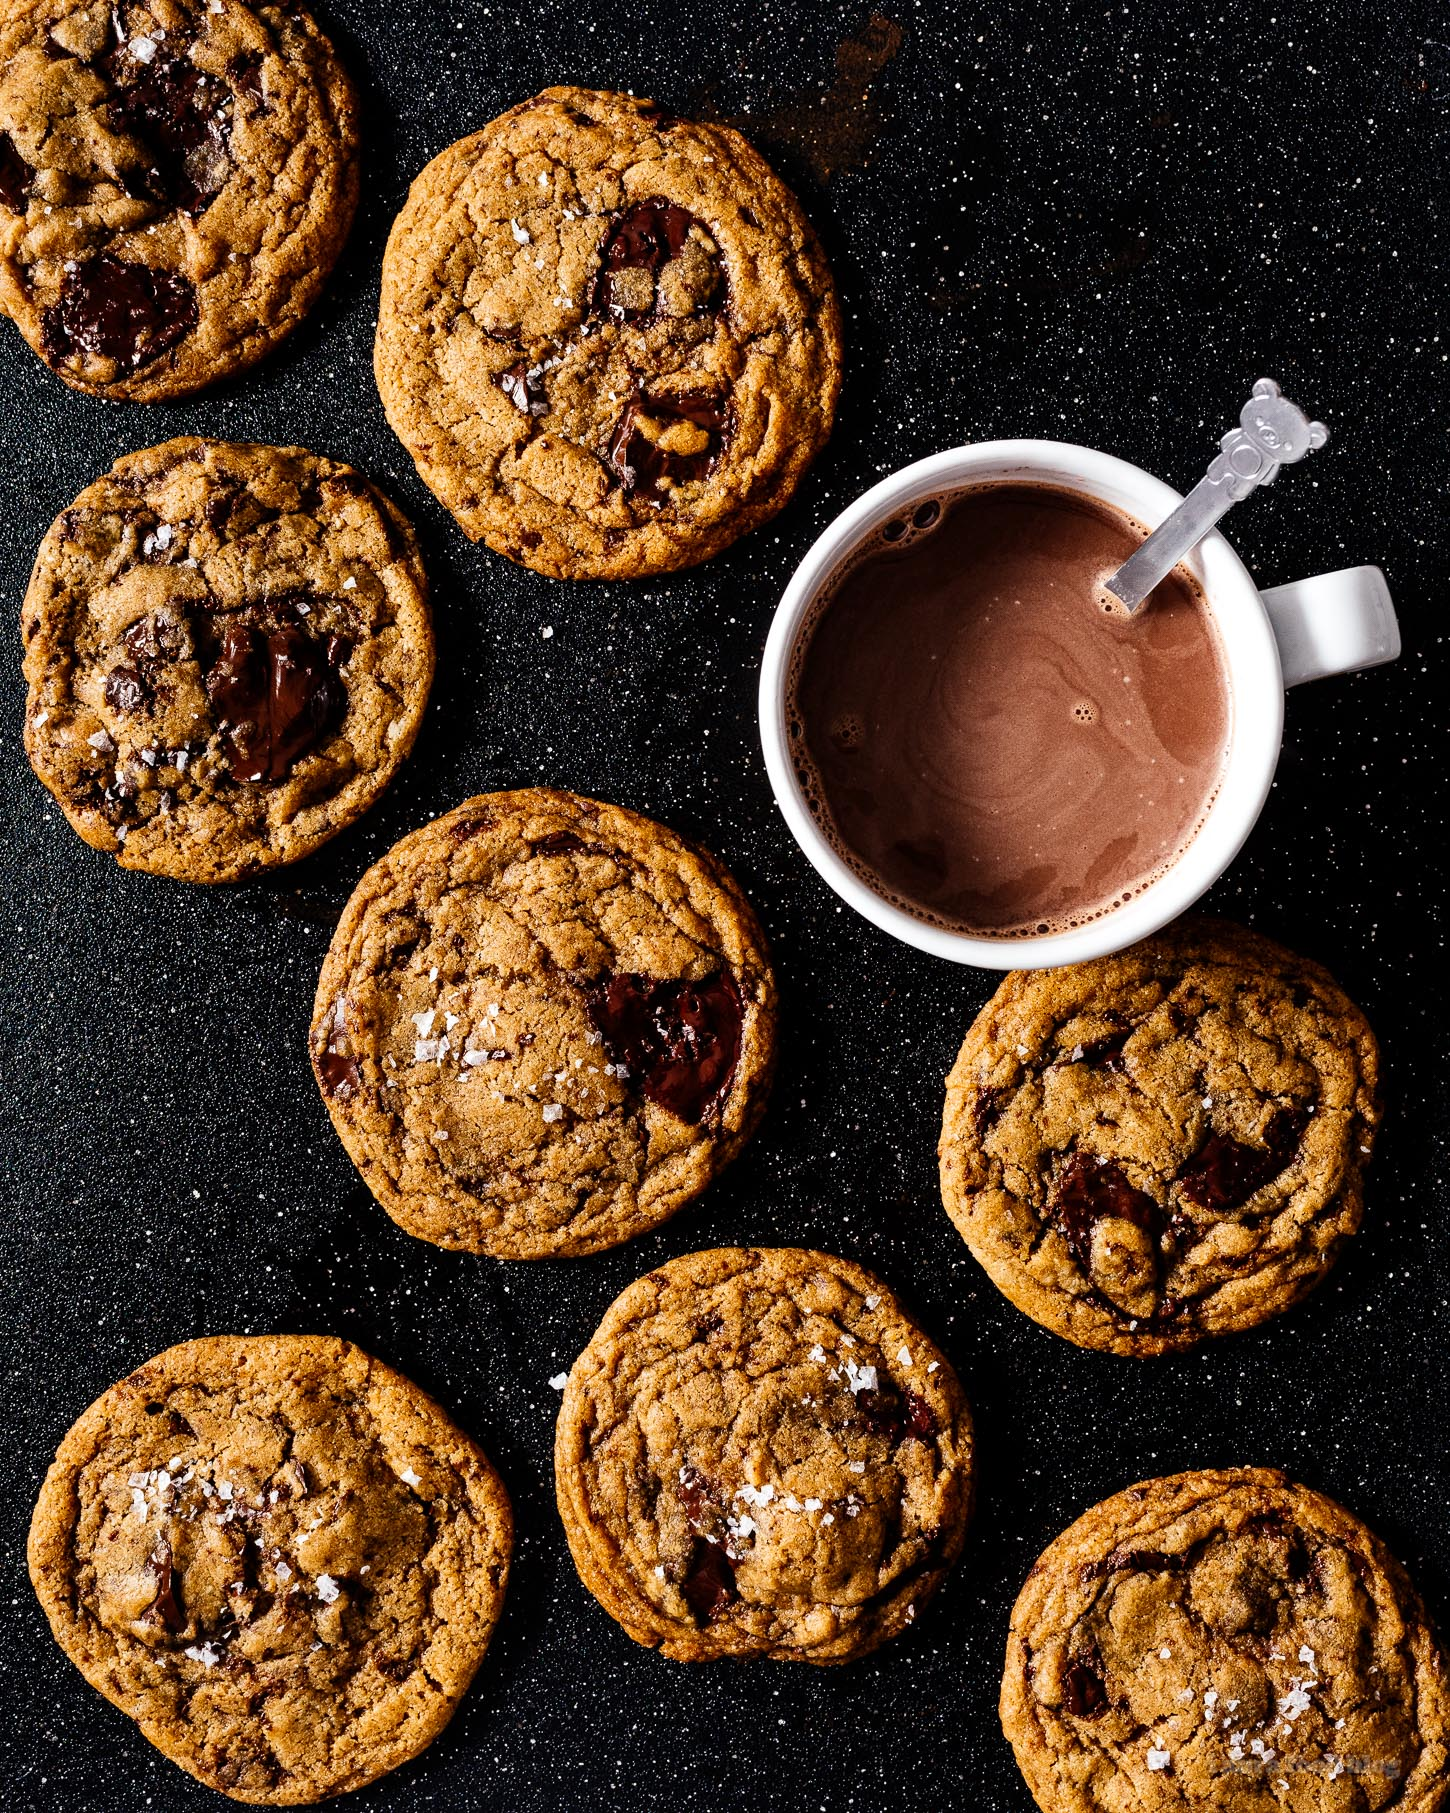 Discover ALL the crispy edges, soft and gooey chocolate, and brown sugar goodness in this vegan chocolate chip cookies recipe. #vegan #chocolatechip #chocolate #chocolatechipcookie #recipe #recipes #veganrecipe